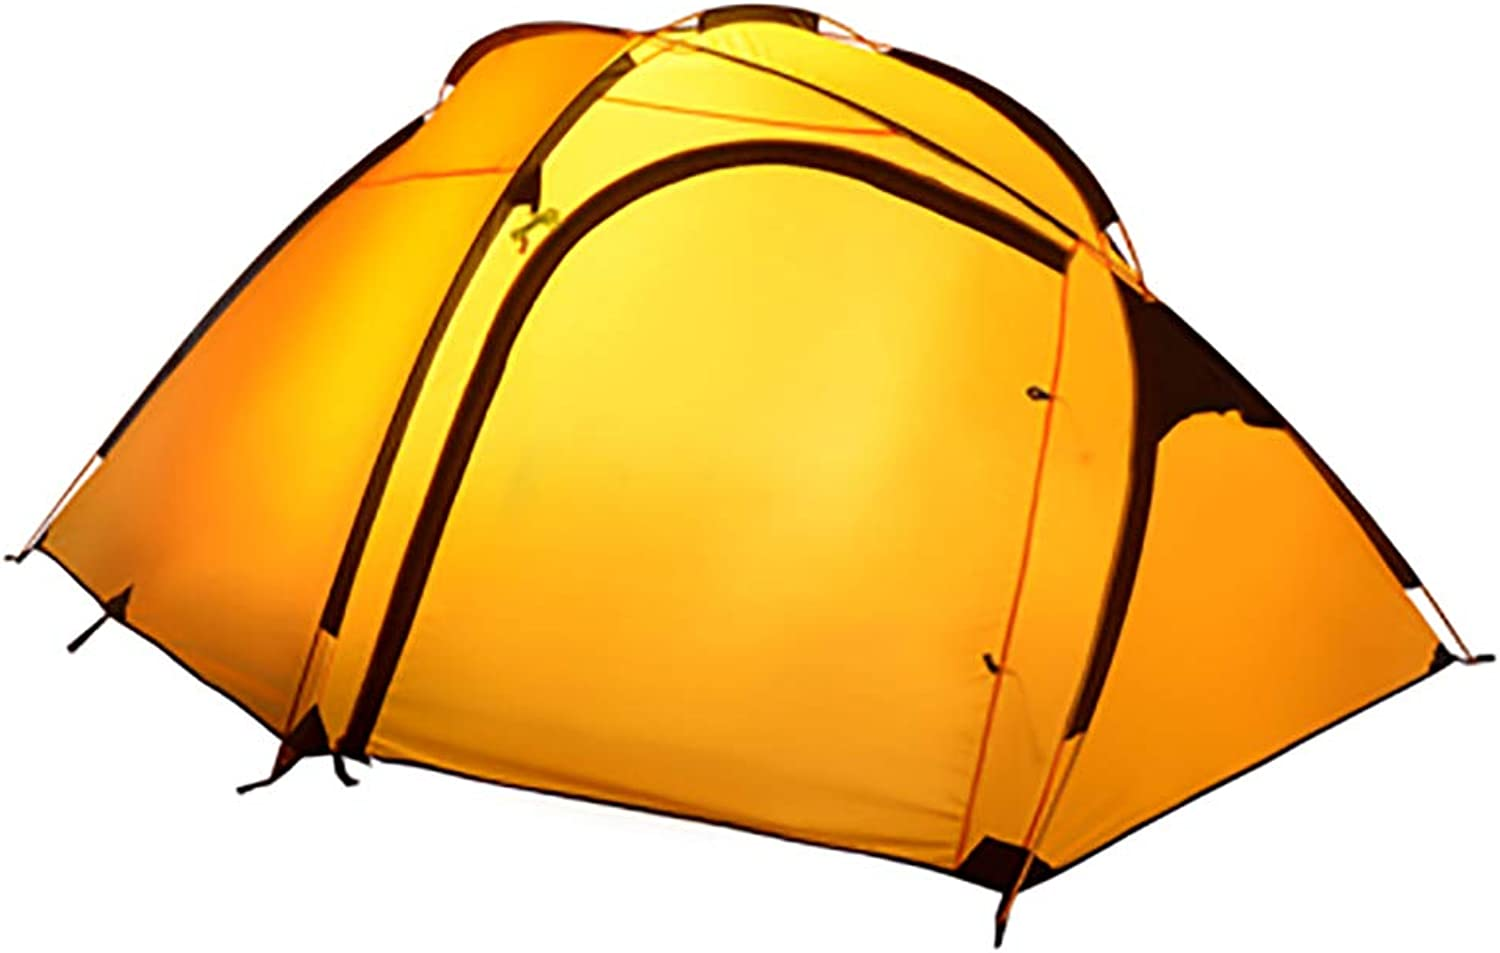 Ultralight Four Seasons Tent, 4-5 People 1 Room 1 Hall Outdoor Tent, Camping Shelter Anti-Rainstorm Tent Aluminum Double Layer